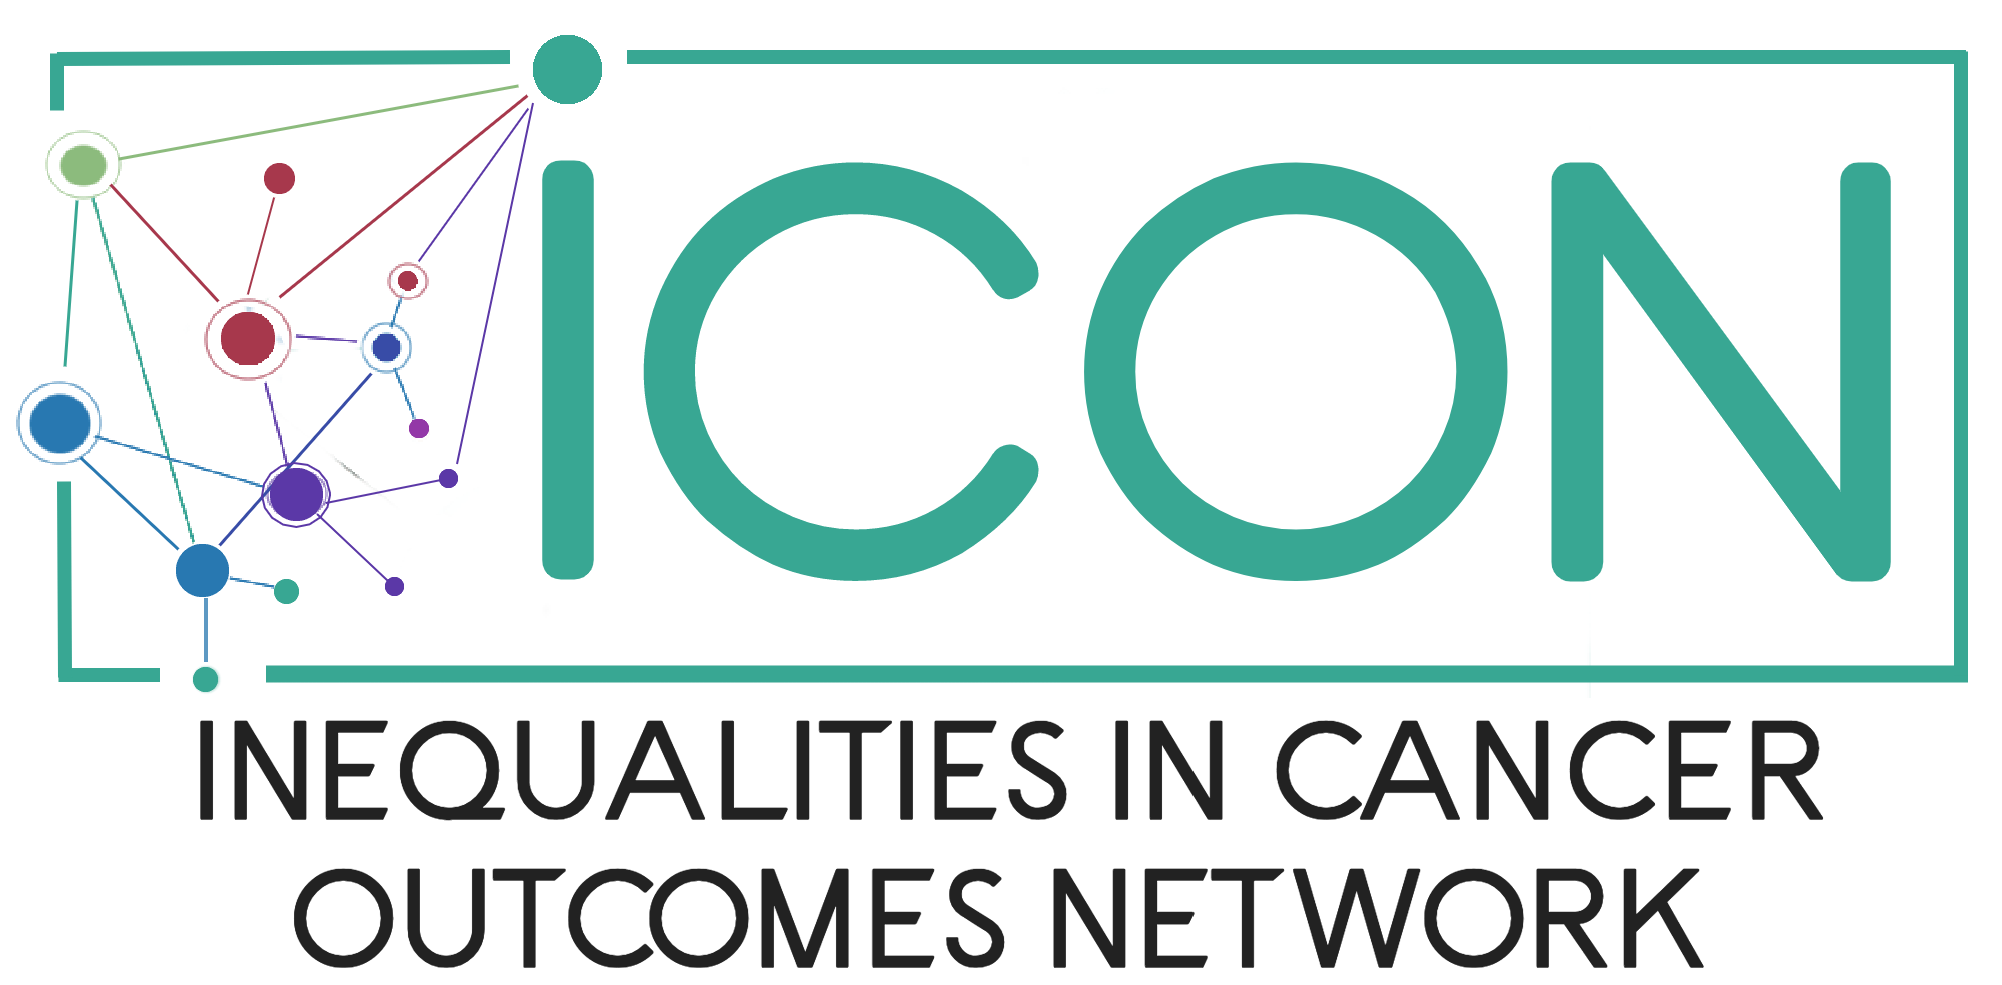 Inequalities in Cancer Outcomes Network